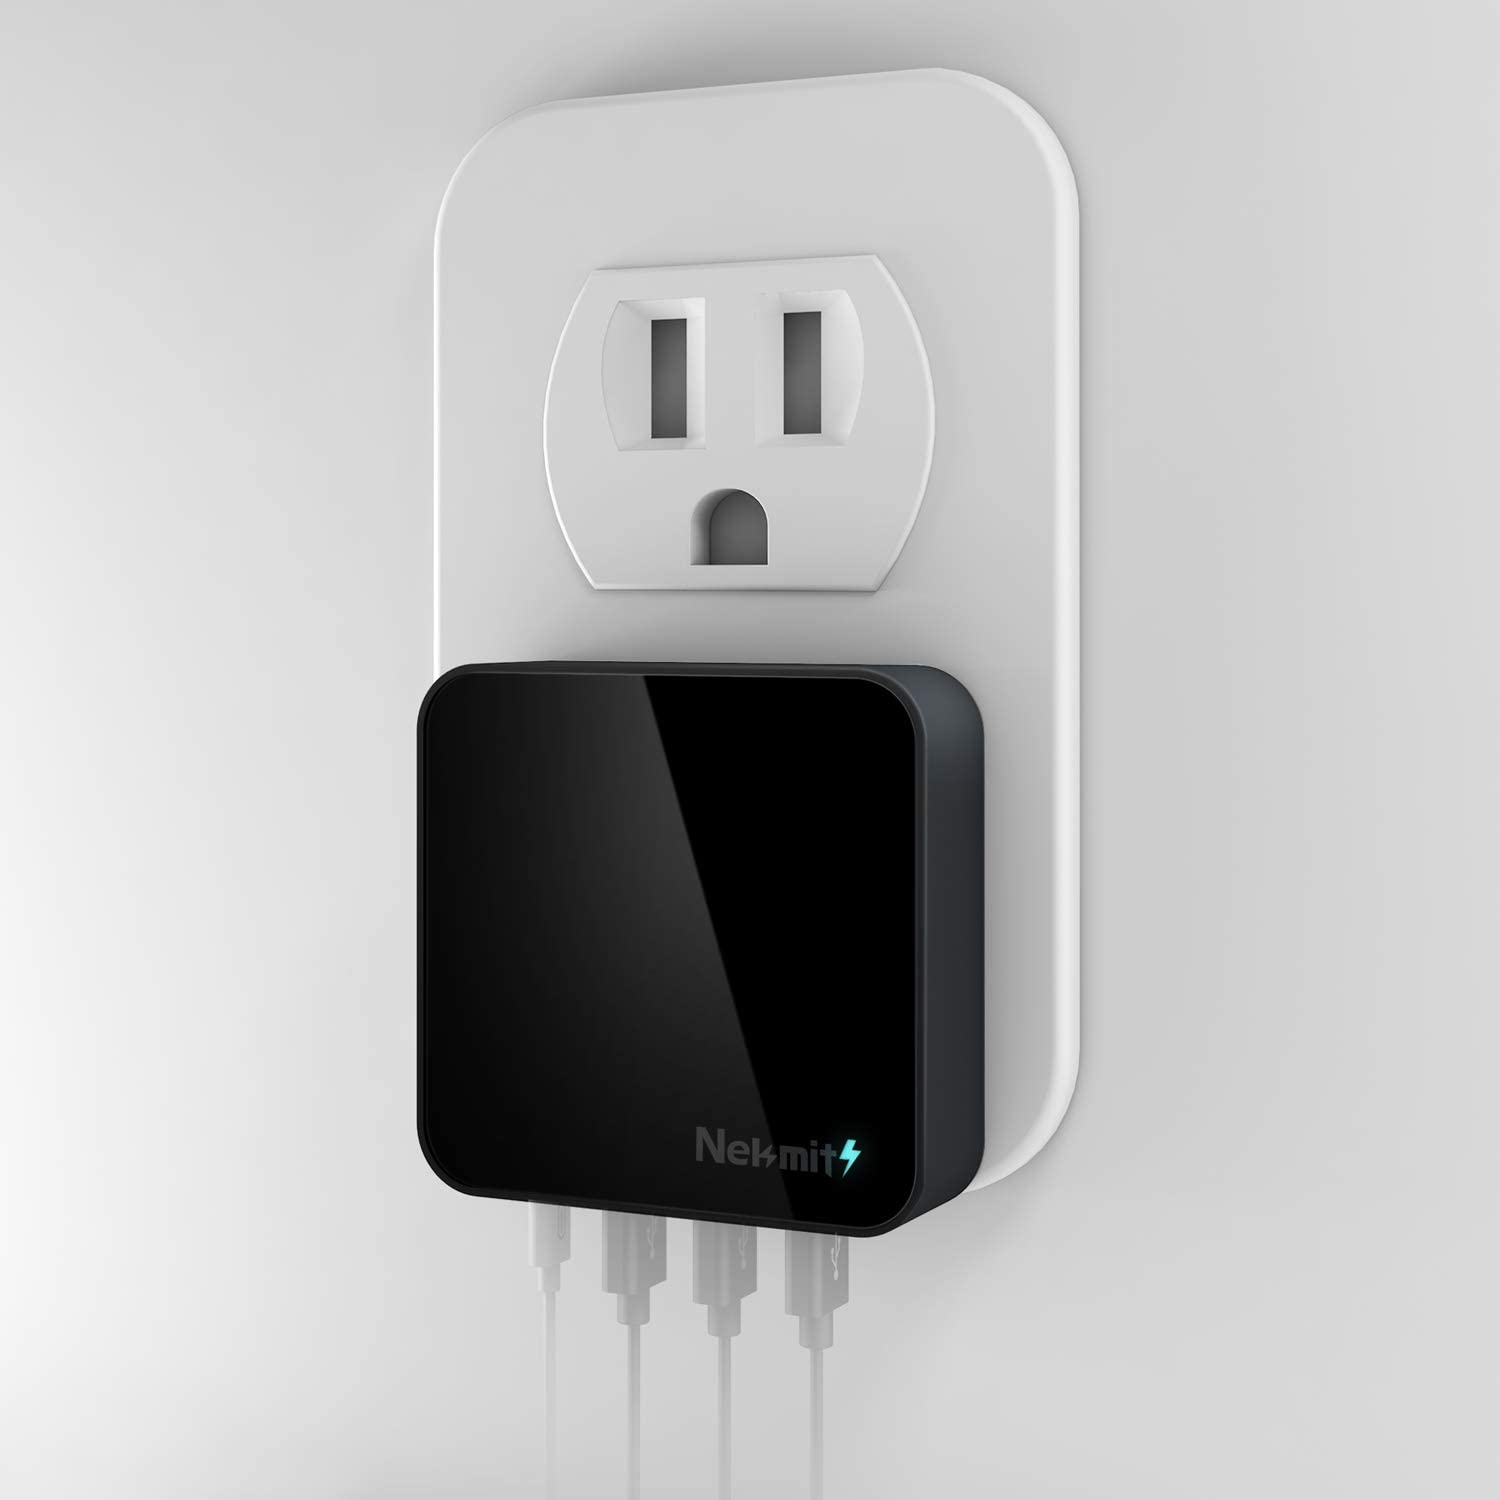 iPhone 11// Pro//Max//XS//Max//XR//X Pixel Galaxy and More Nekmit USB C Charger Thin Flat 42W 4-Port Wall Charger with One 18W Power Delivery PD 3.0 and 3 USB Port for iPad Pro